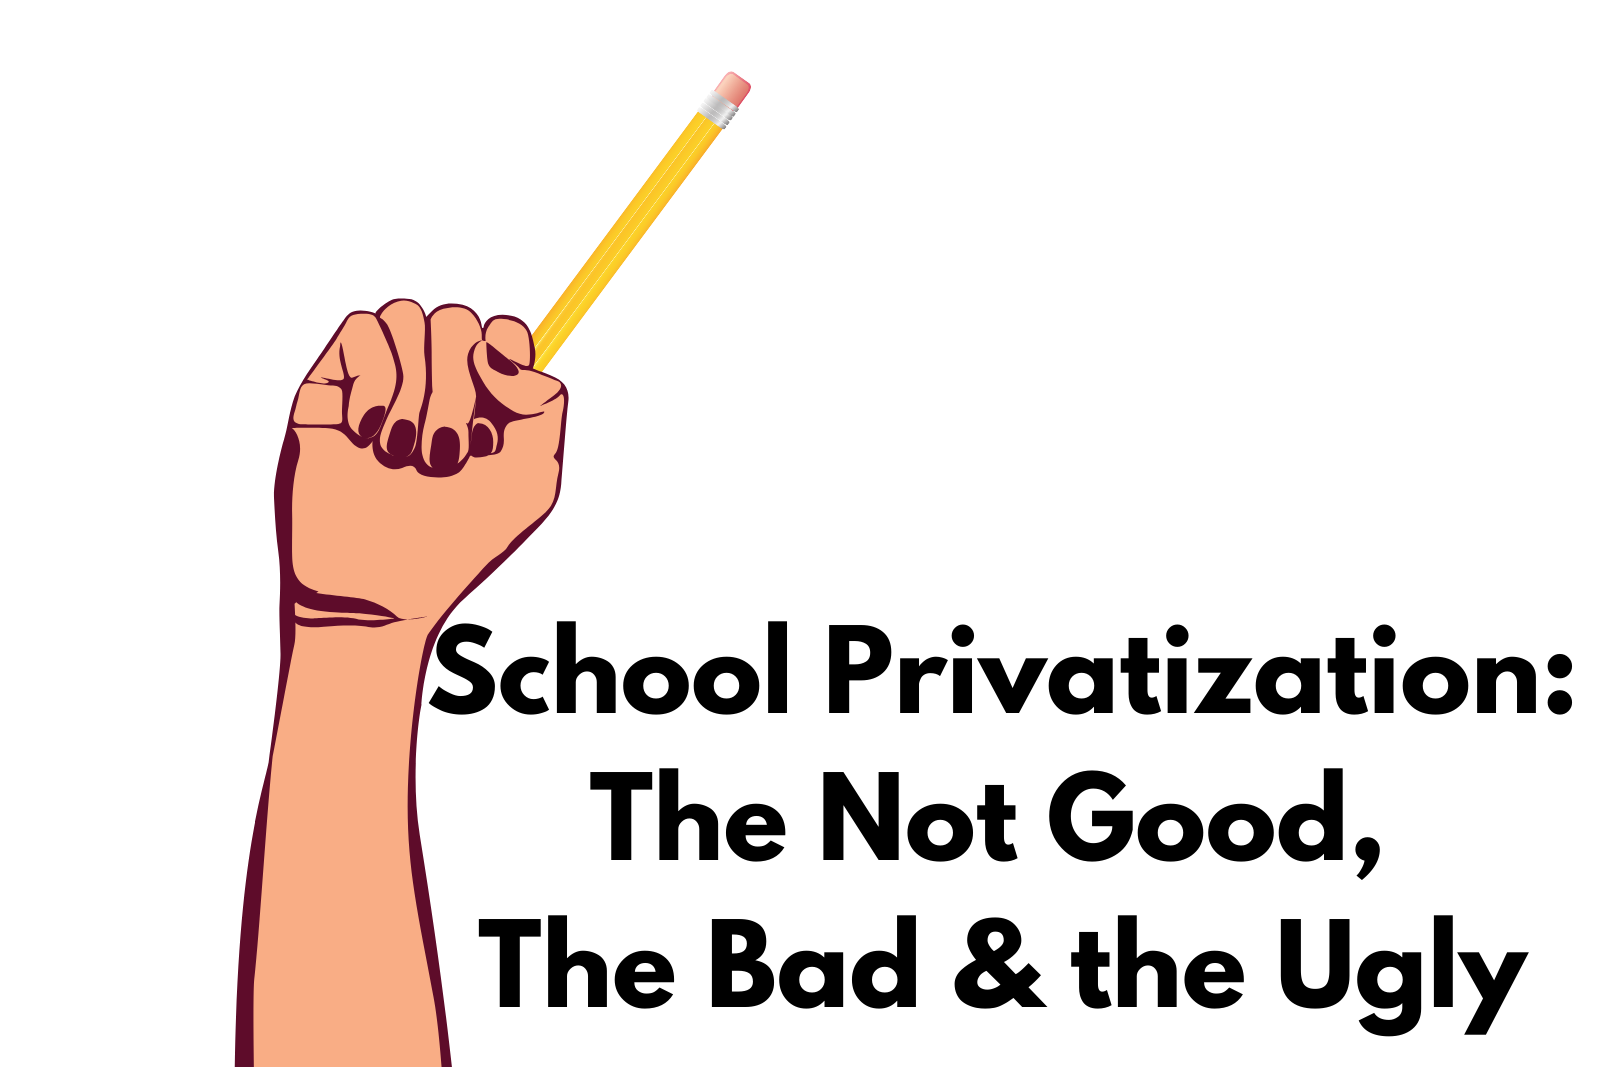 School Privatization:  The Not Good, The Bad, The Ugly